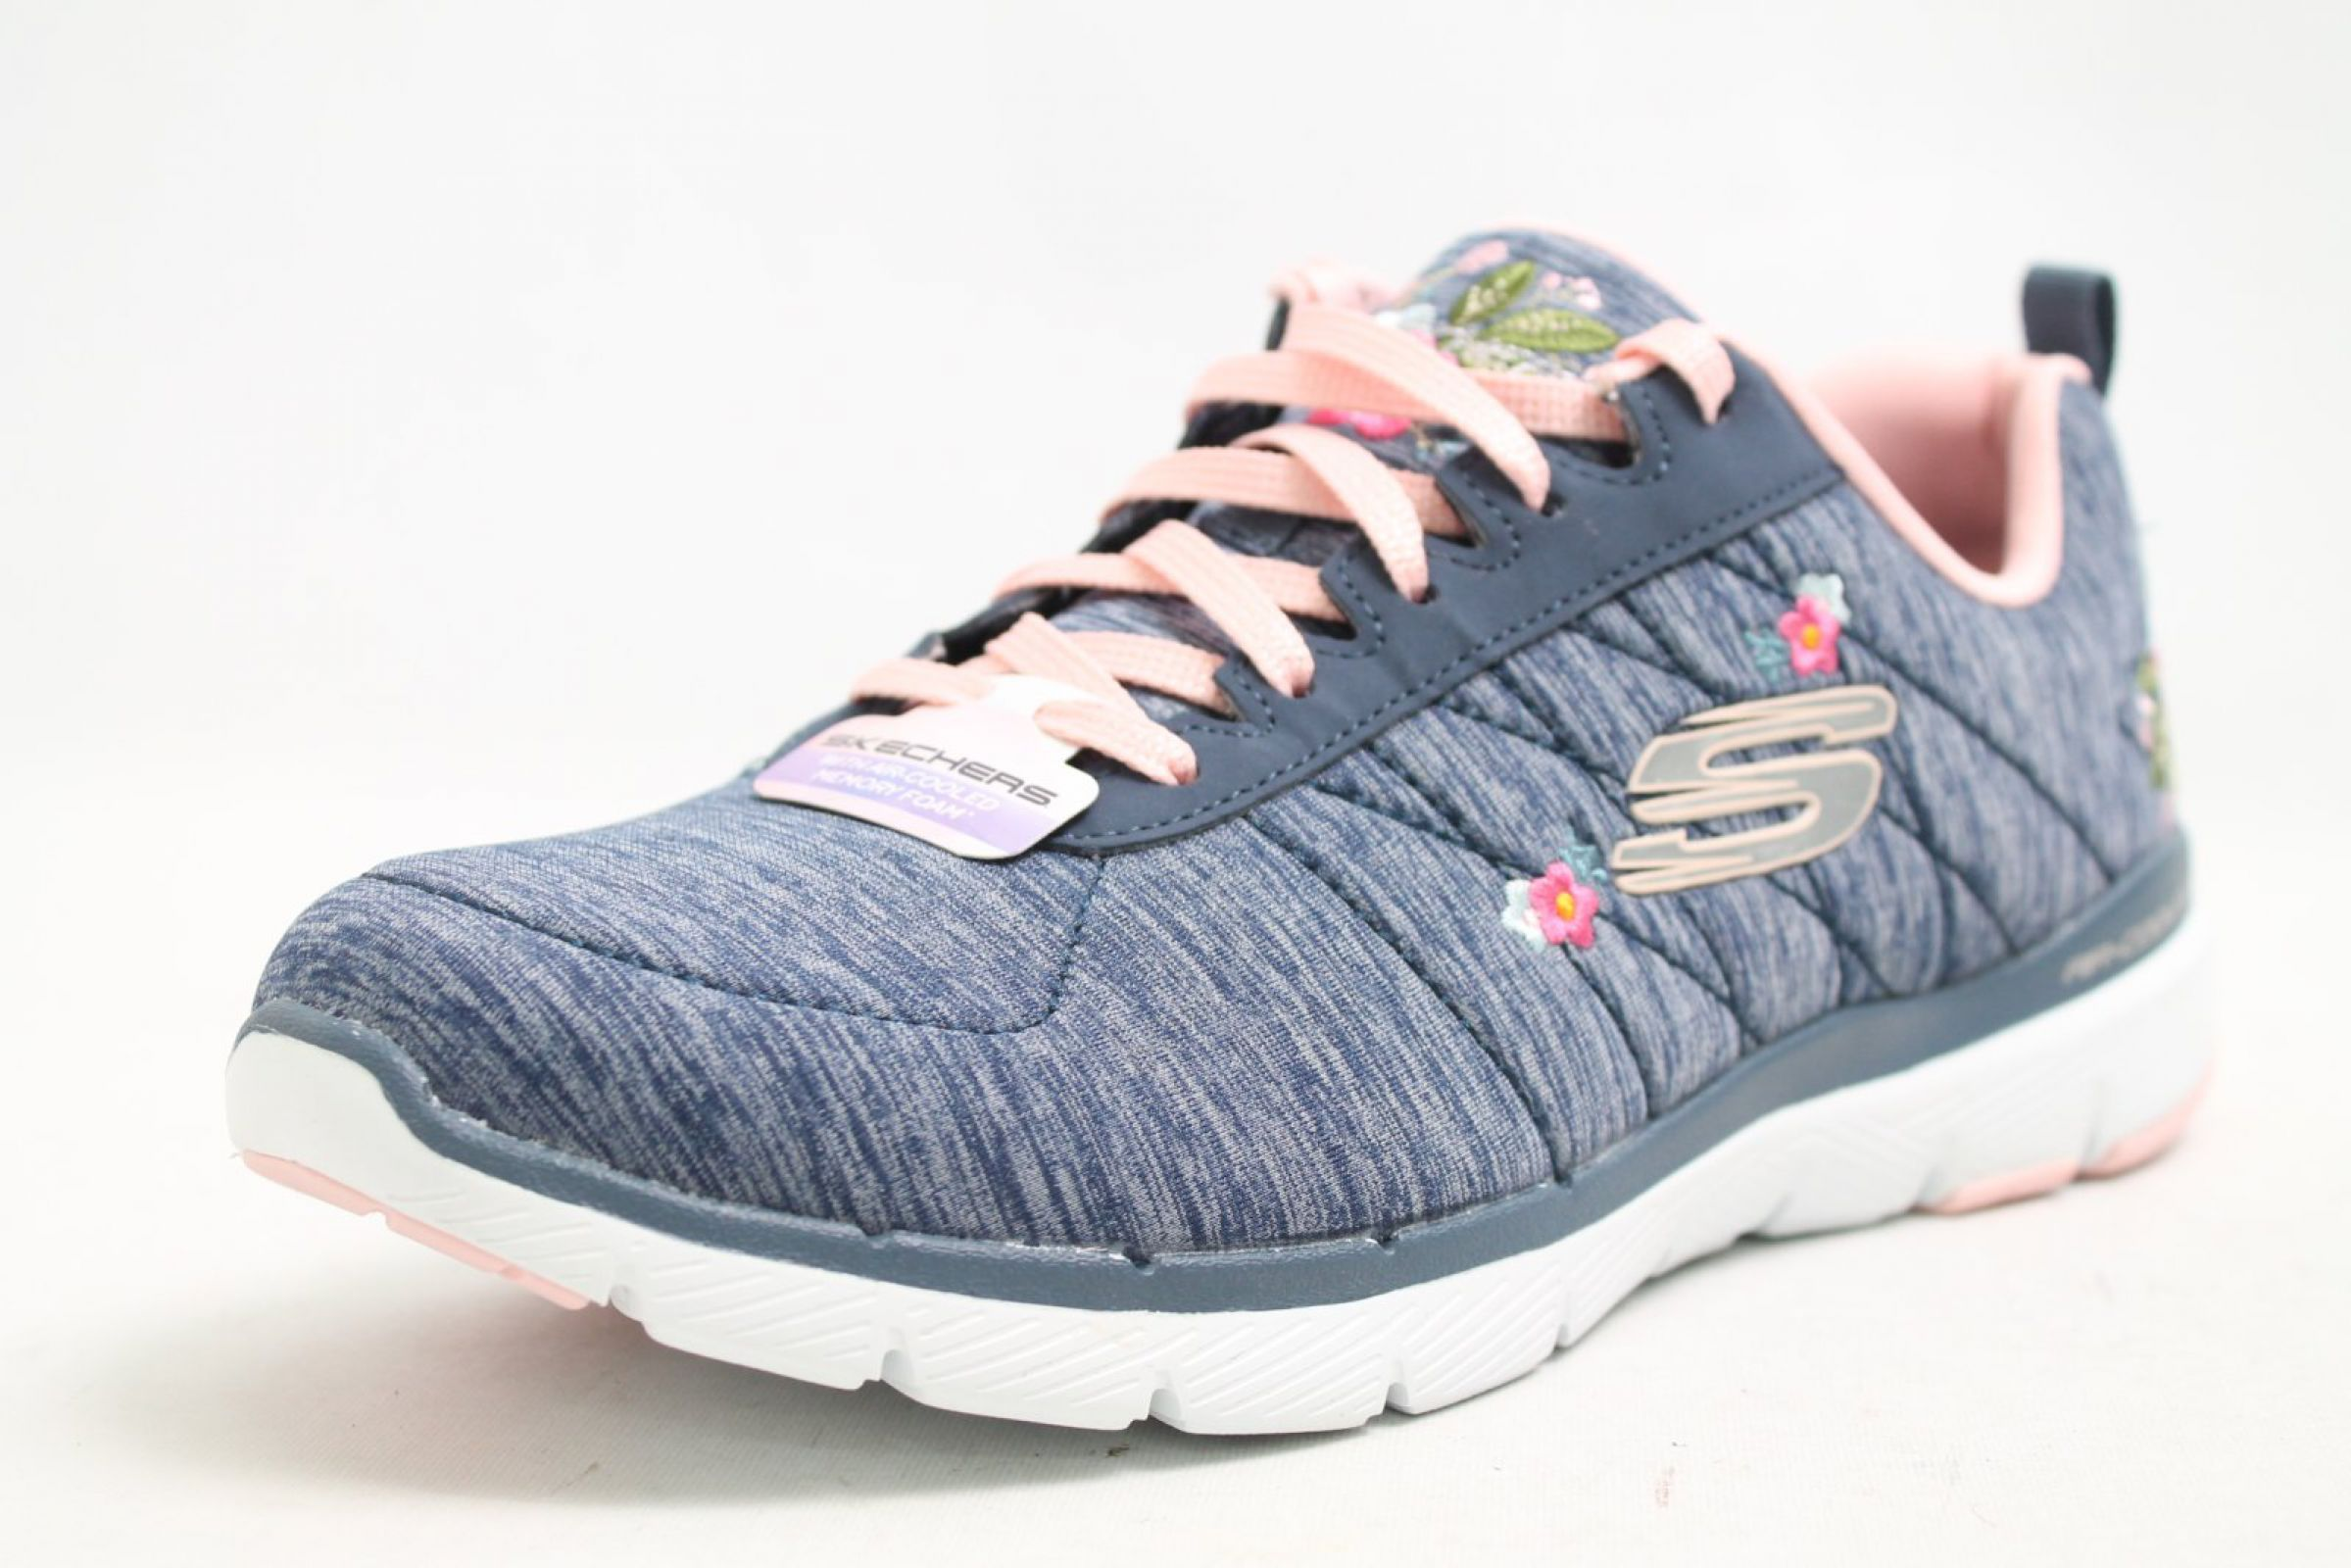 SKECHERS AIR COOLED Memory Foam Gr. 40 Damen